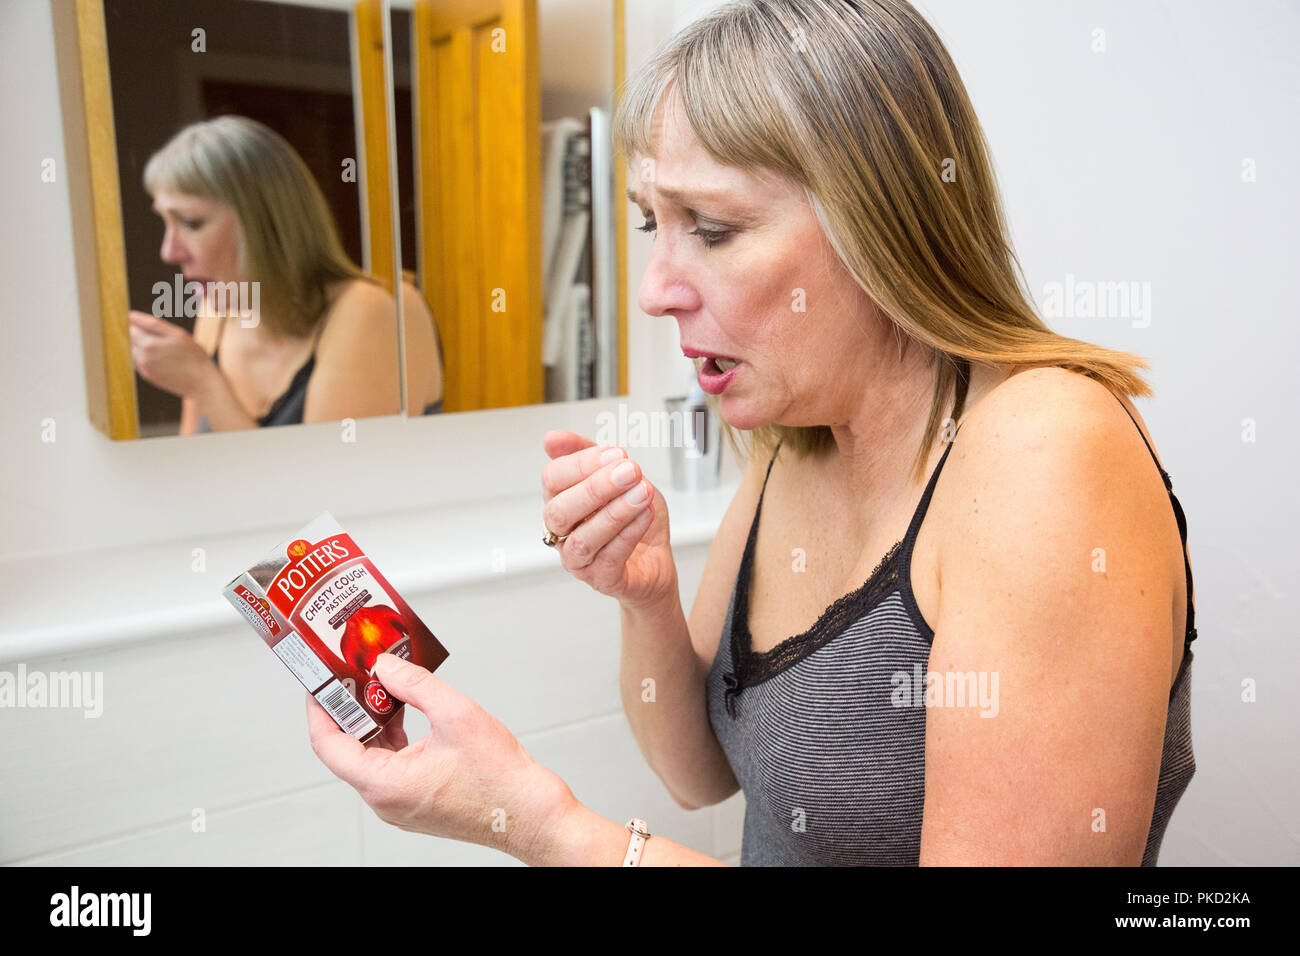 Woman coughing using Potter's cough medication - Stock Image